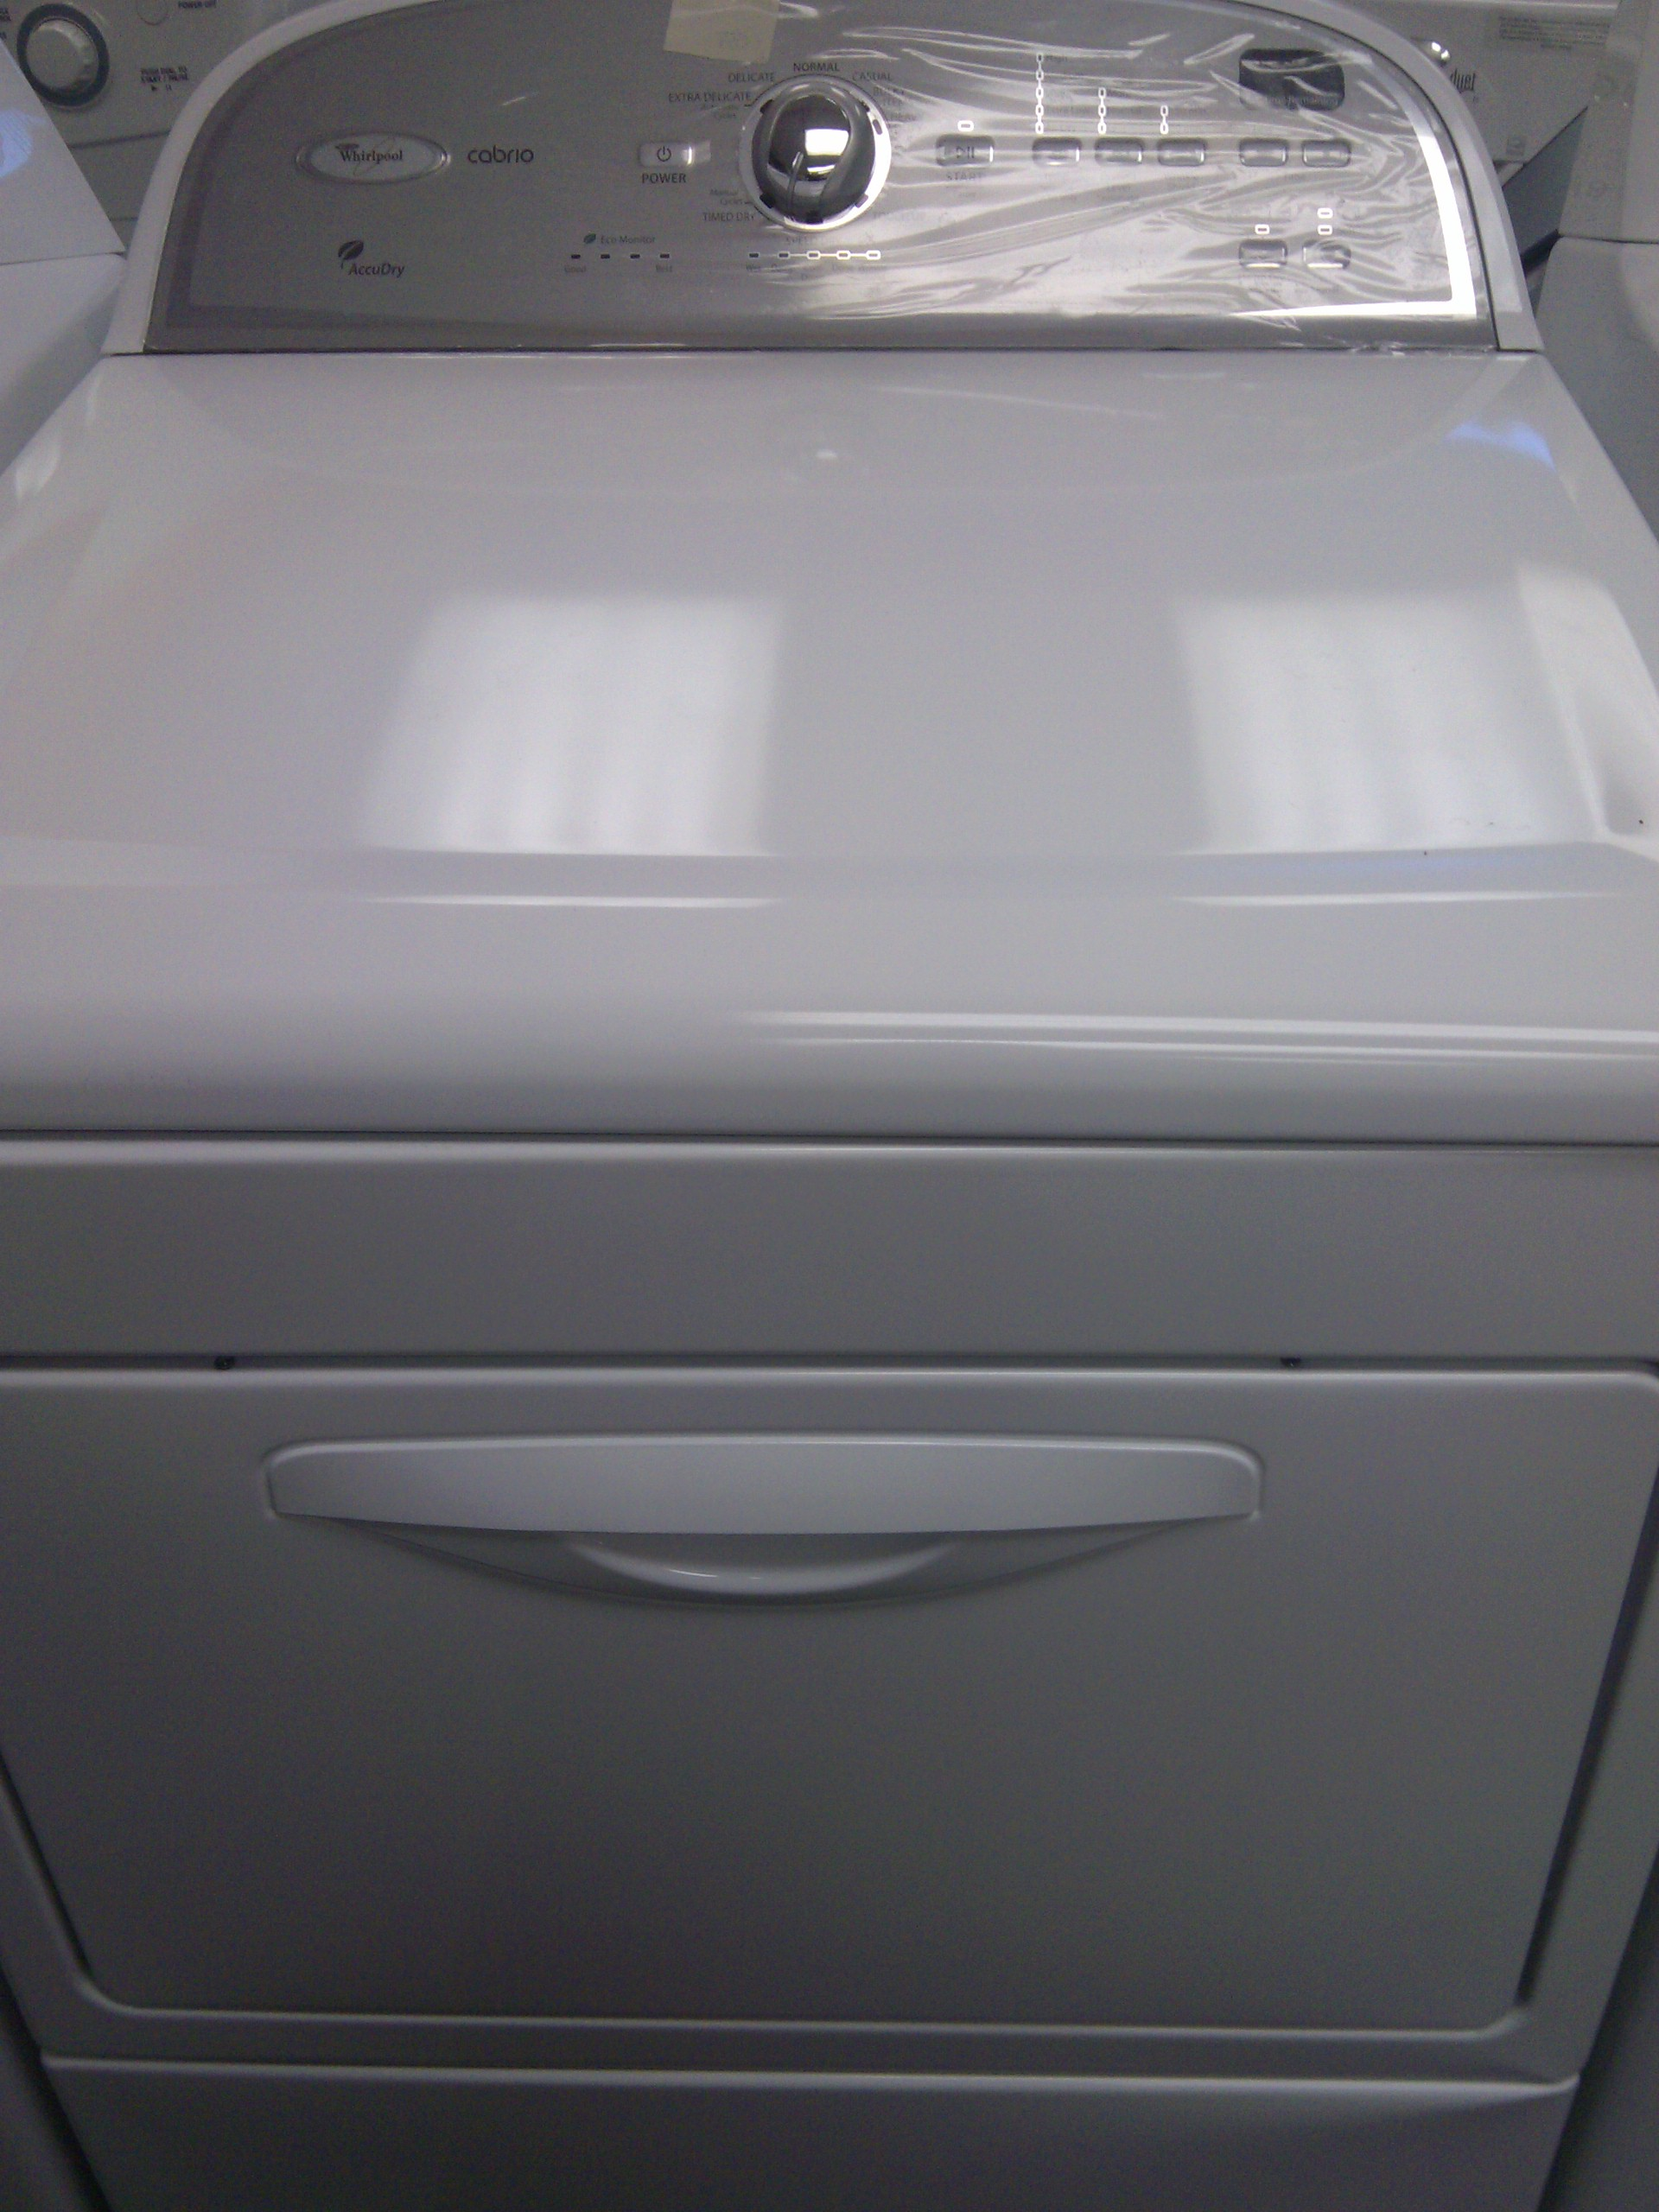 9 Whirlpool Cabrio Wgd5610xw Front Load Gas Dryer White